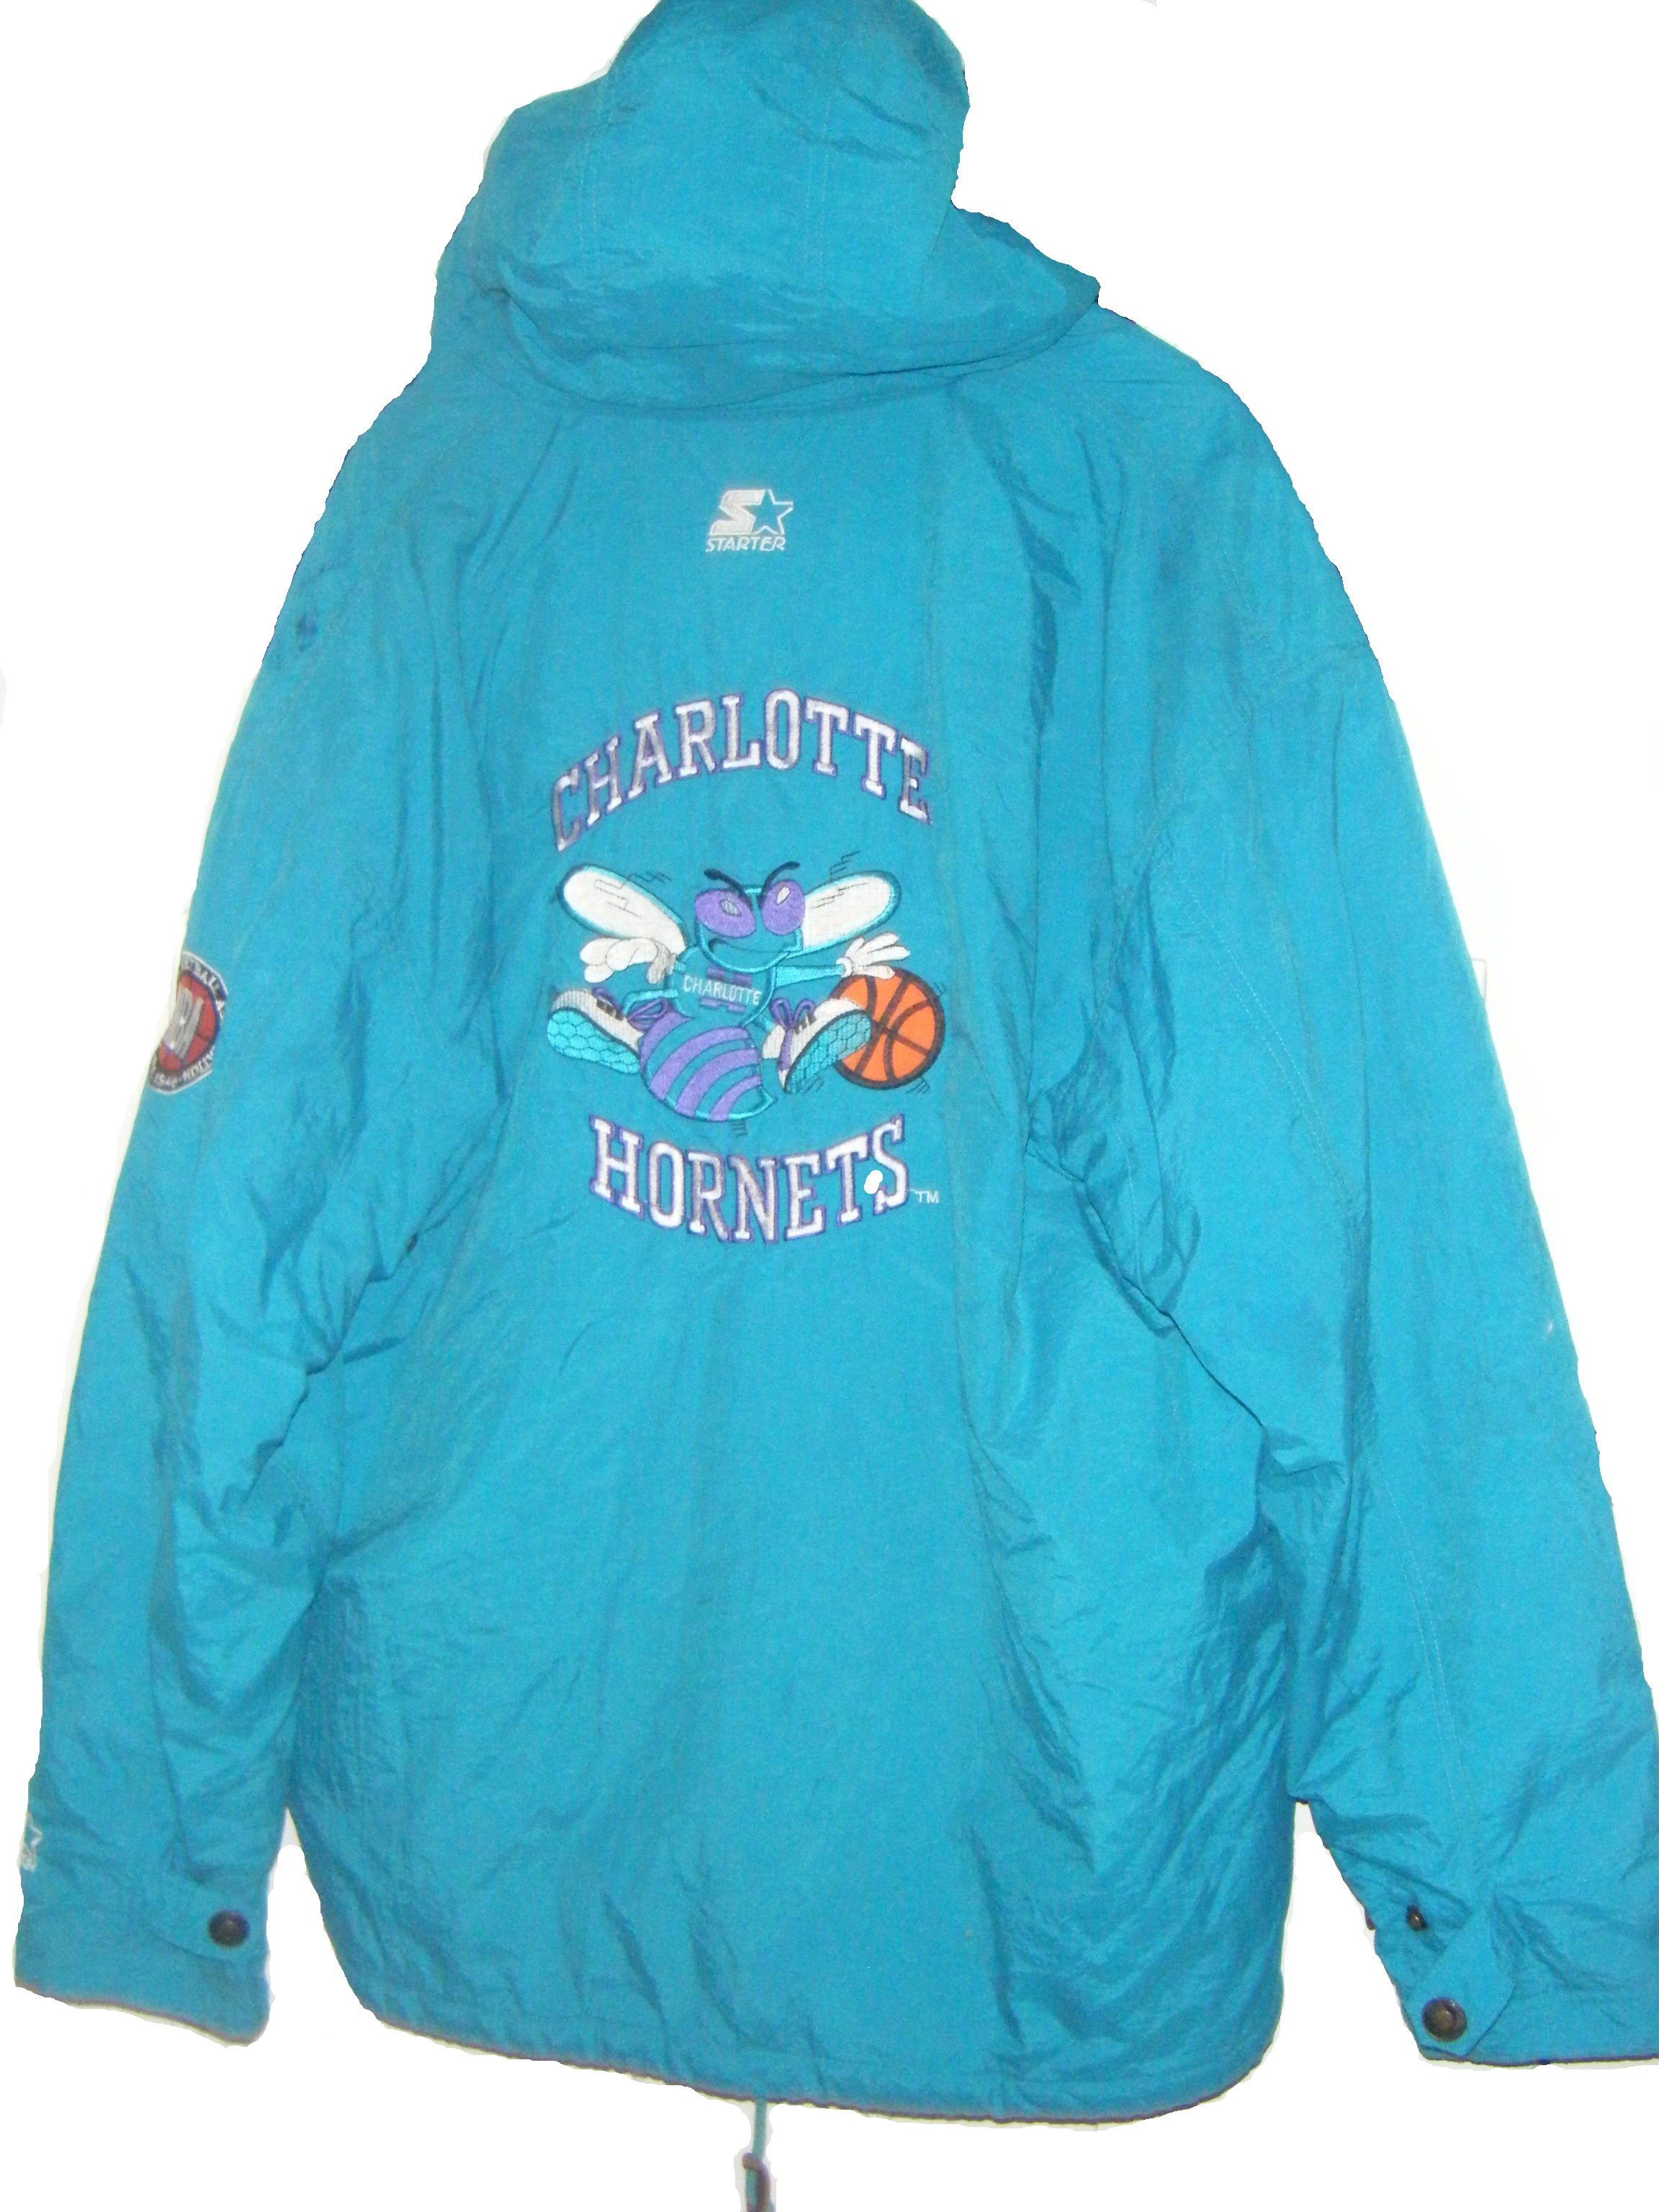 Old School Rules Charlotte Hornets Starter Jacket